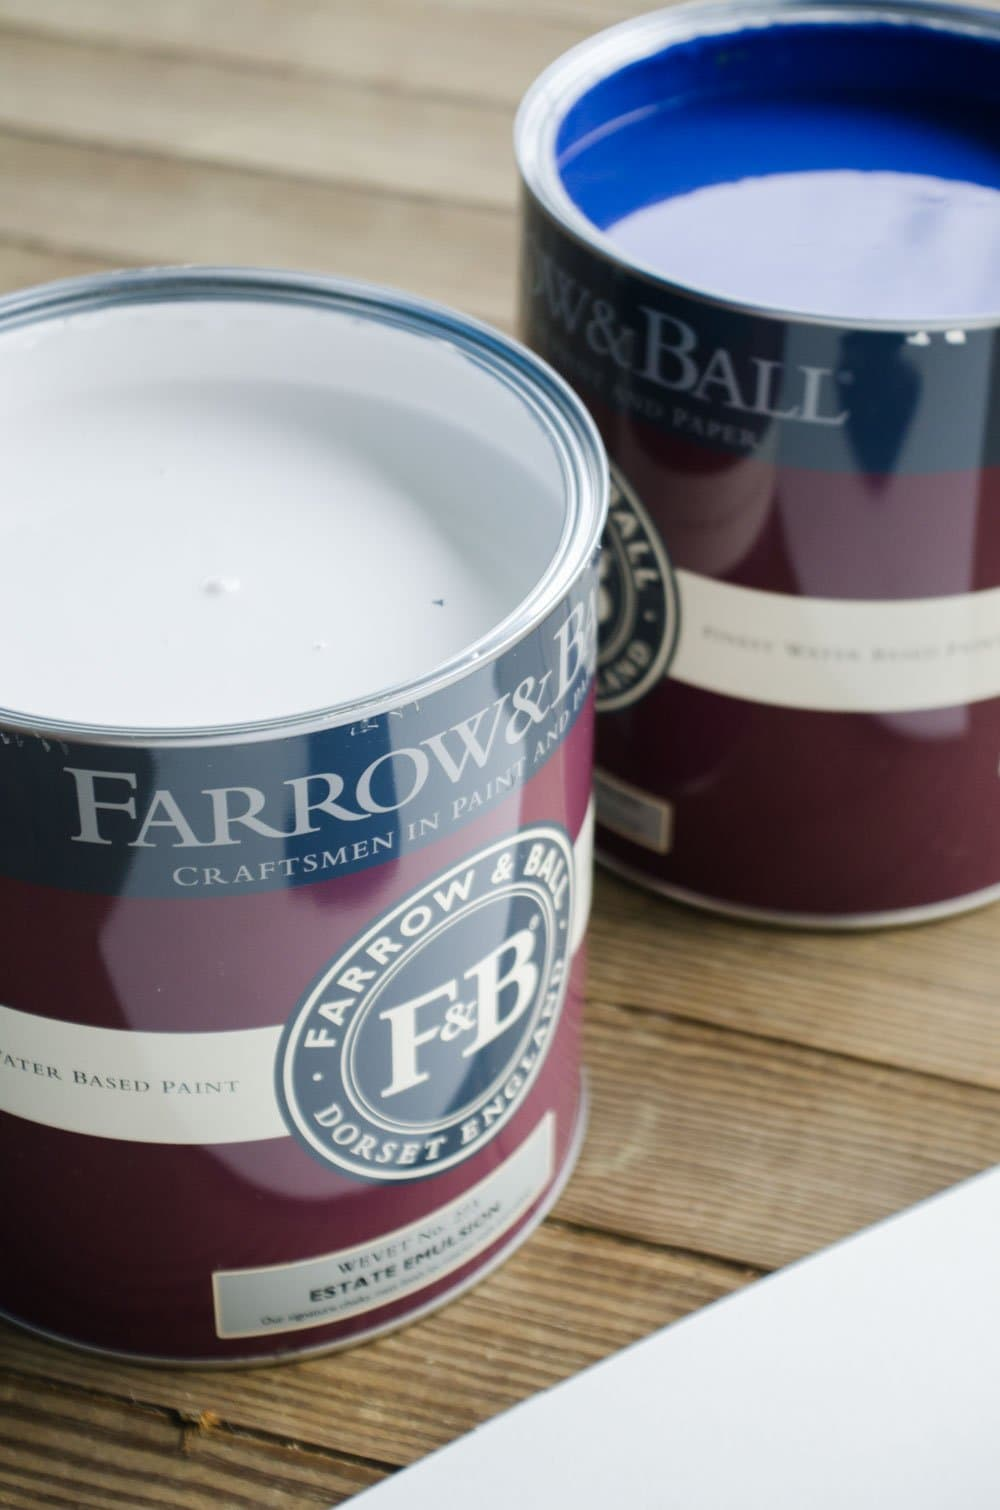 Farrow & Ball Paint for the One Room Challenge on @thouswellblog